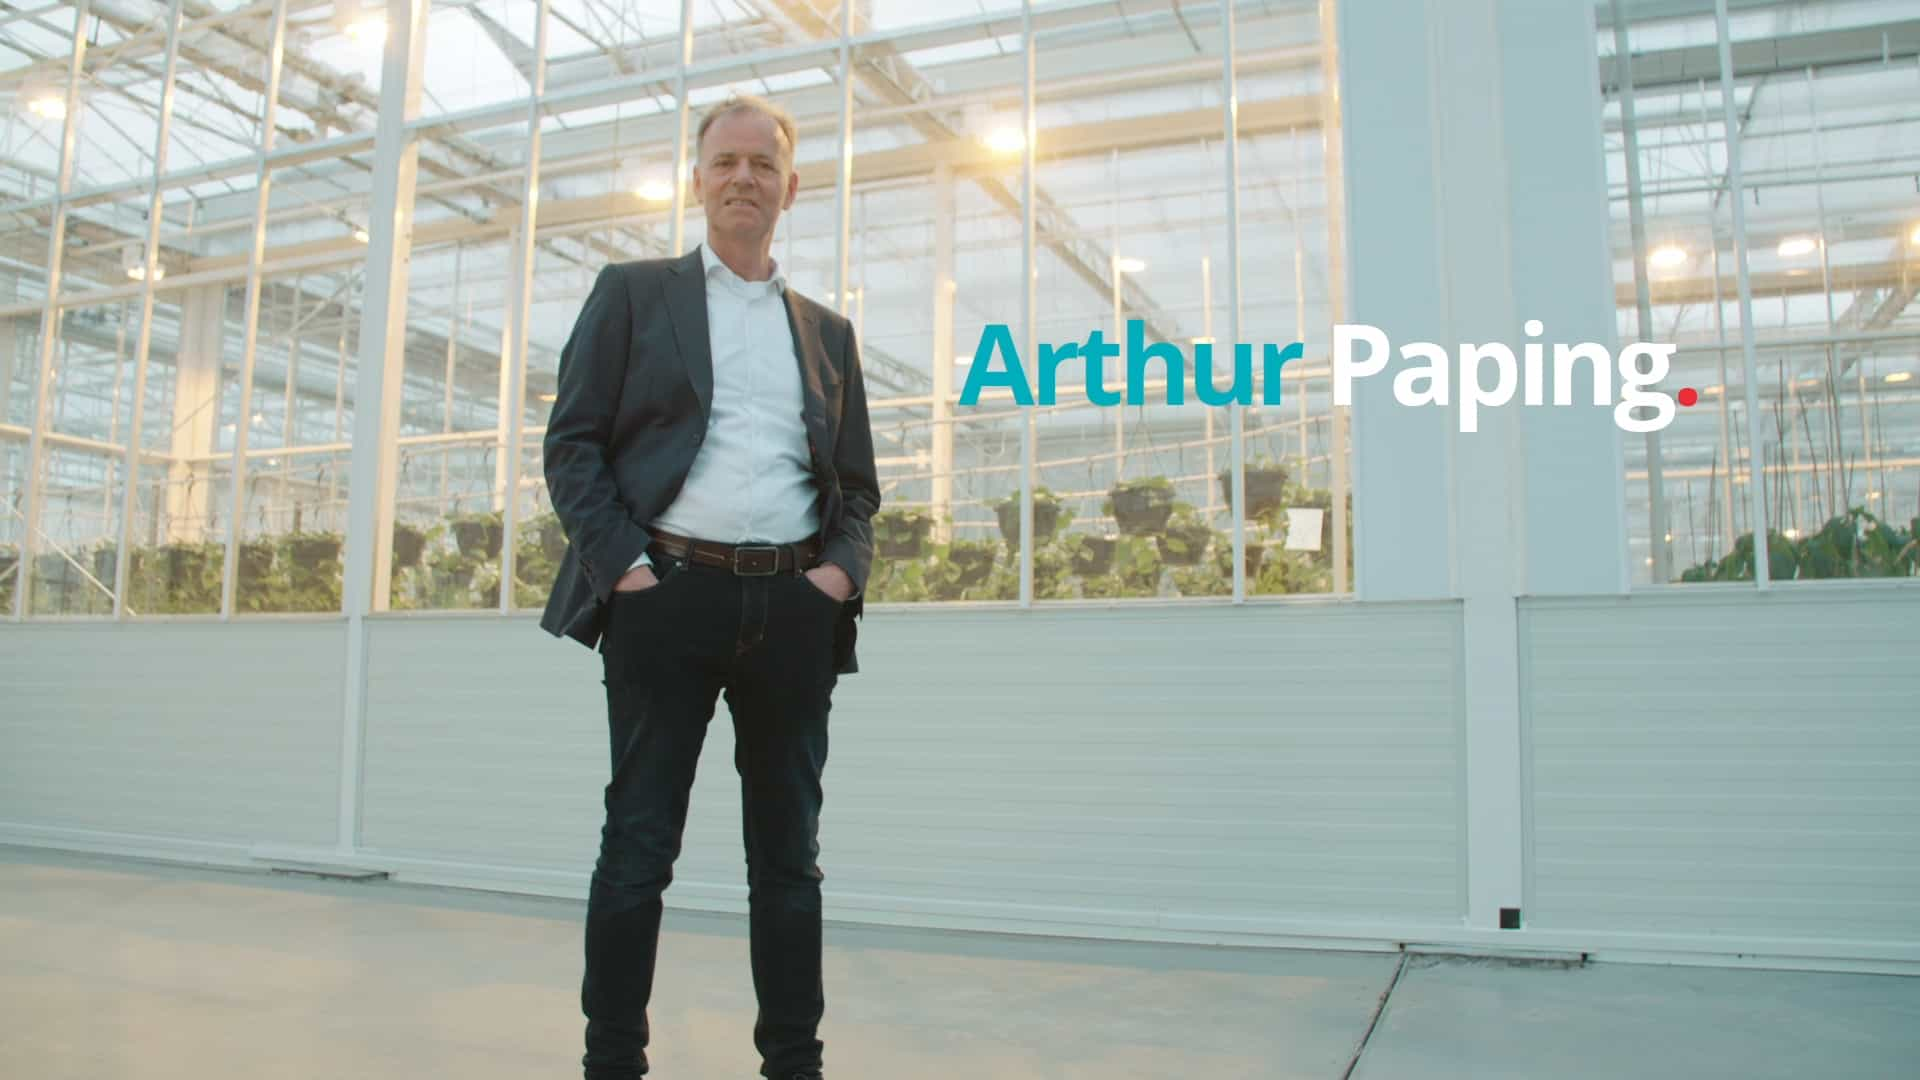 Portretvideo: Arthur Paping